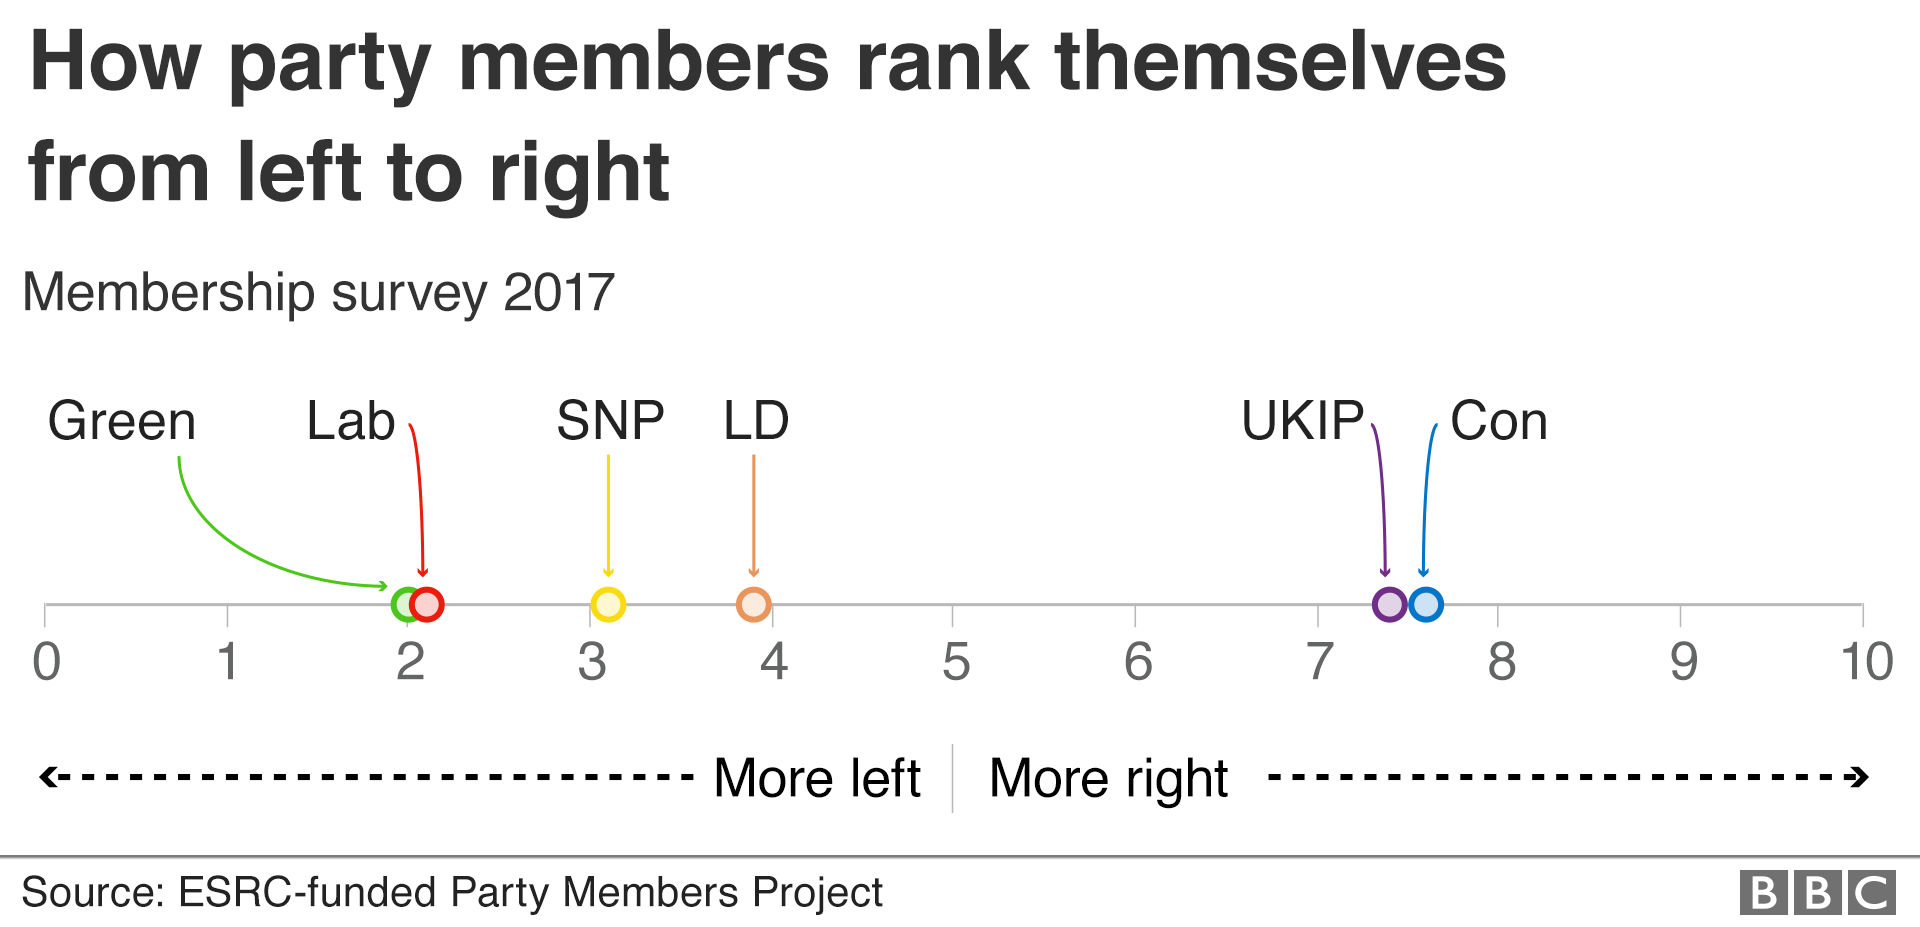 How party members rank themselves from left to right